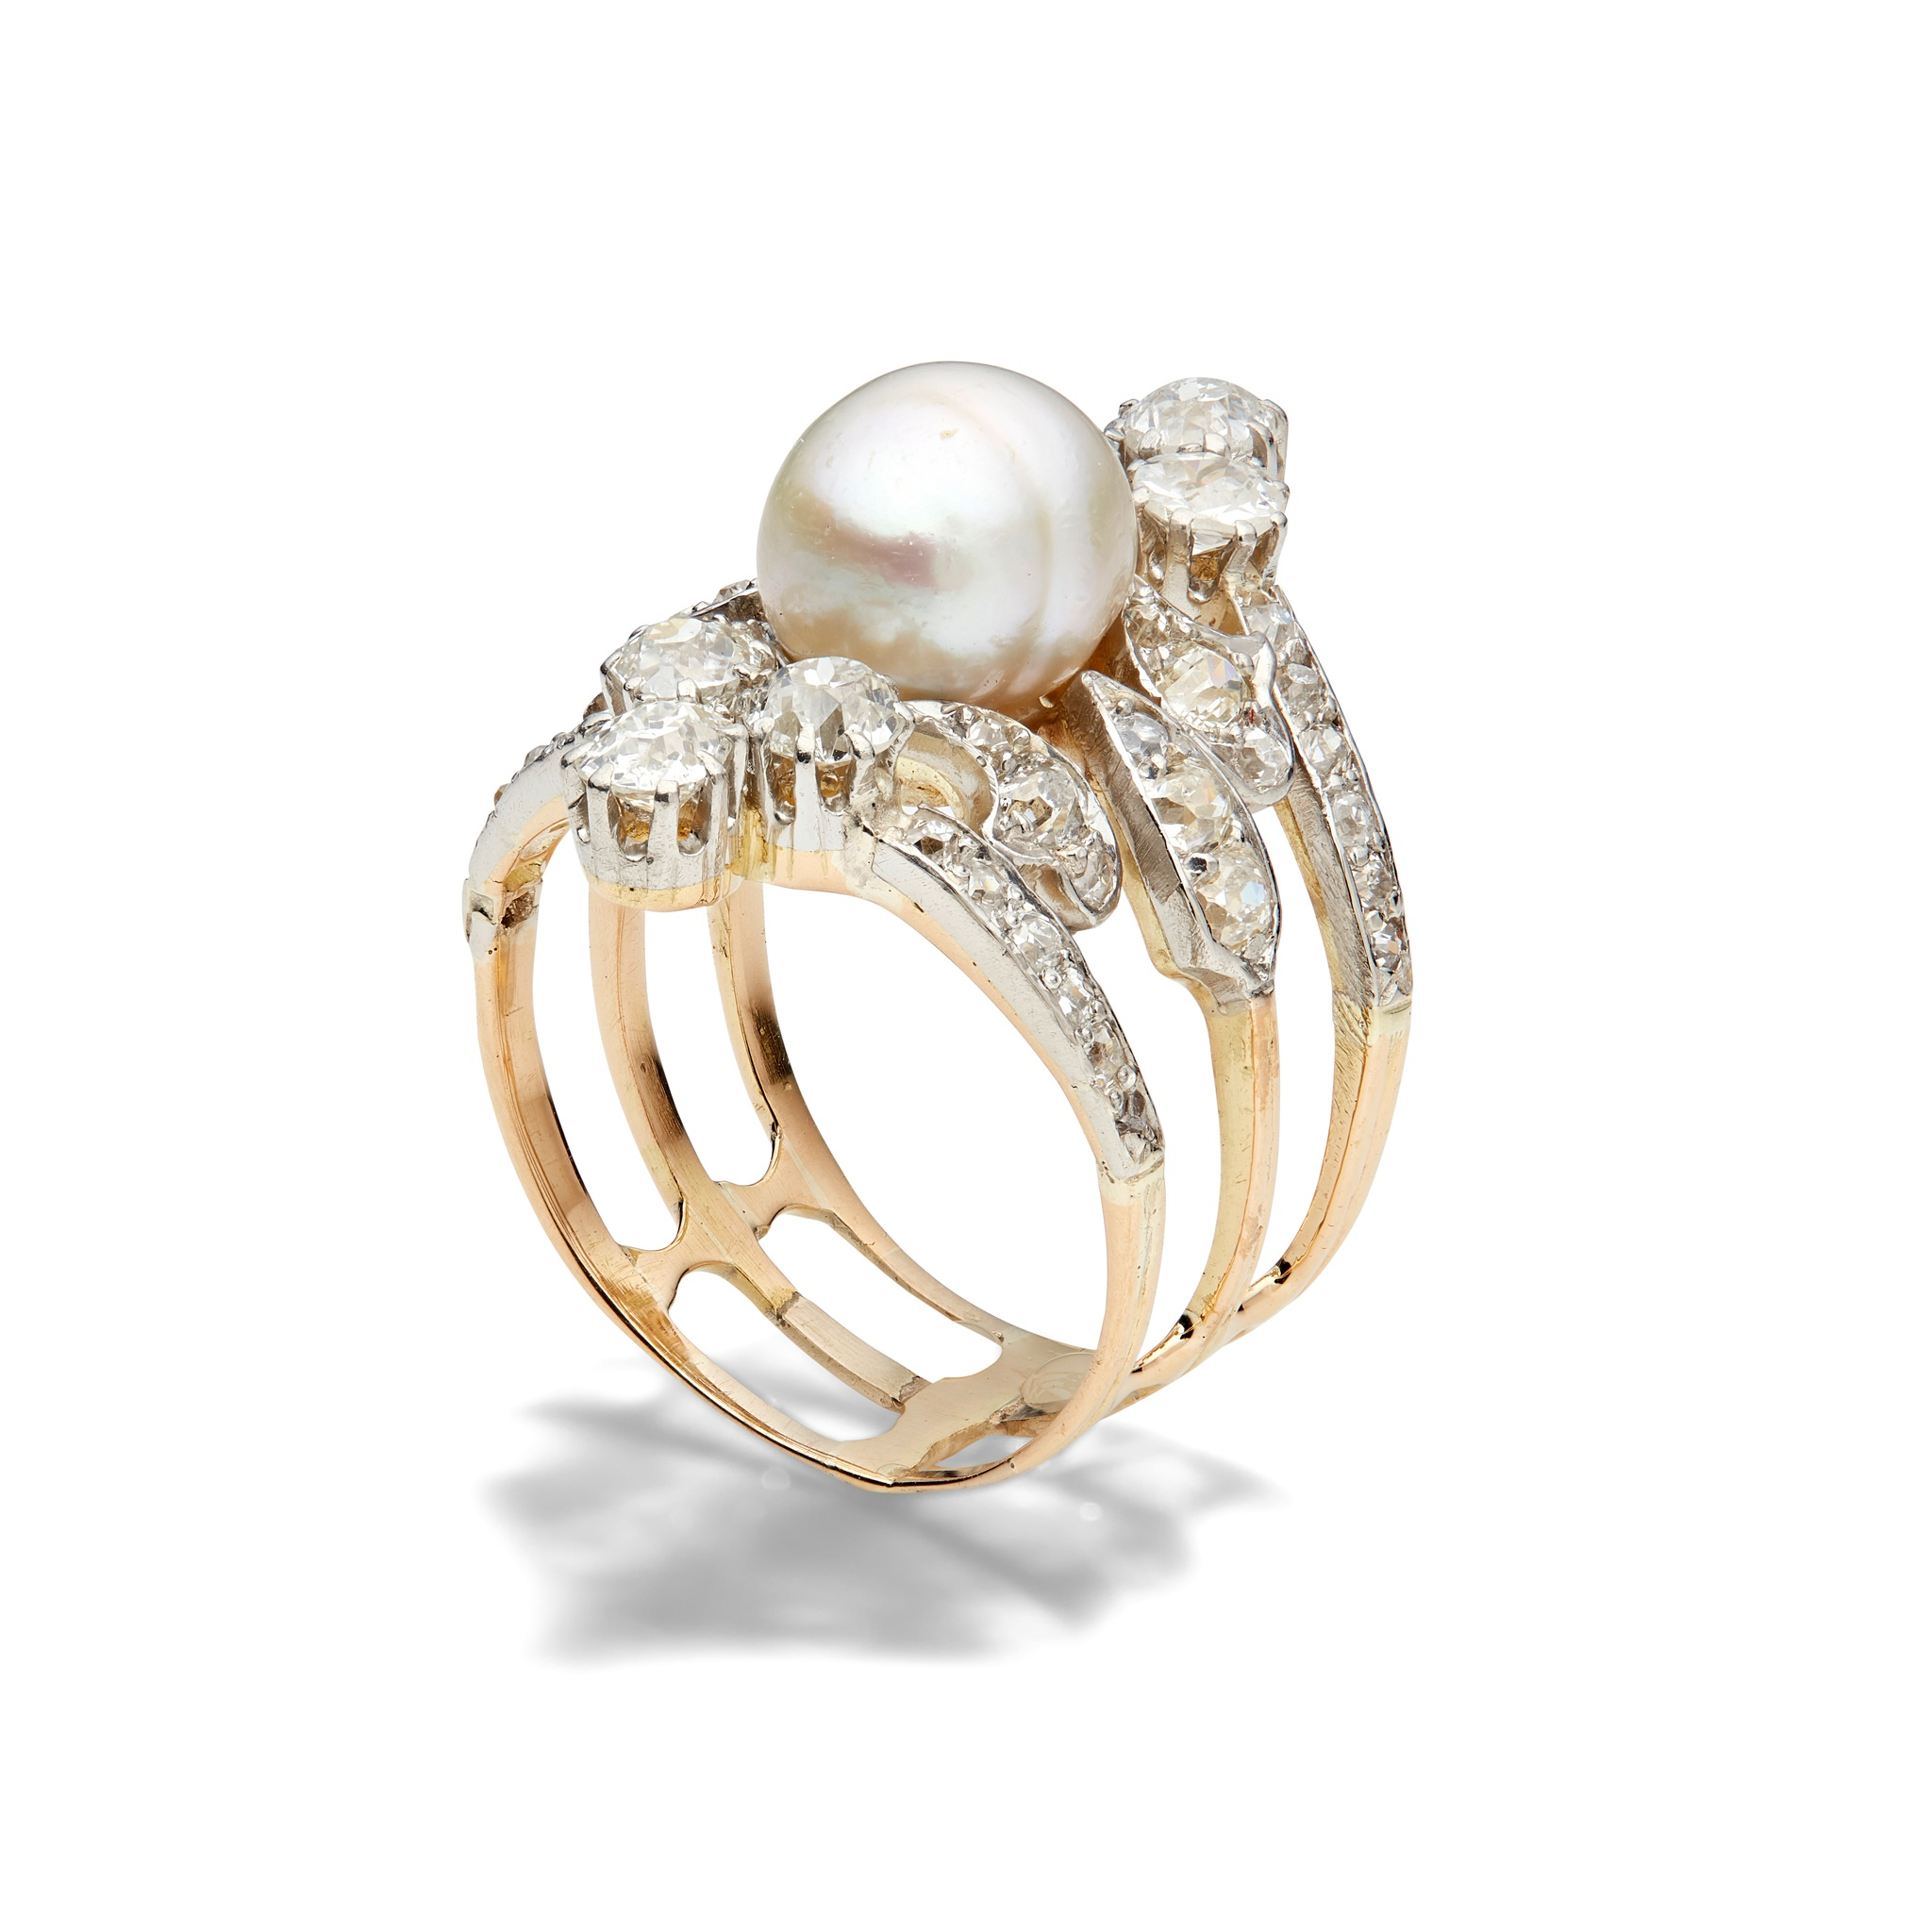 An early 20th century natural pearl and diamond ring The 8.73 x 7.87mm natural pearl mounted on a - Image 2 of 6